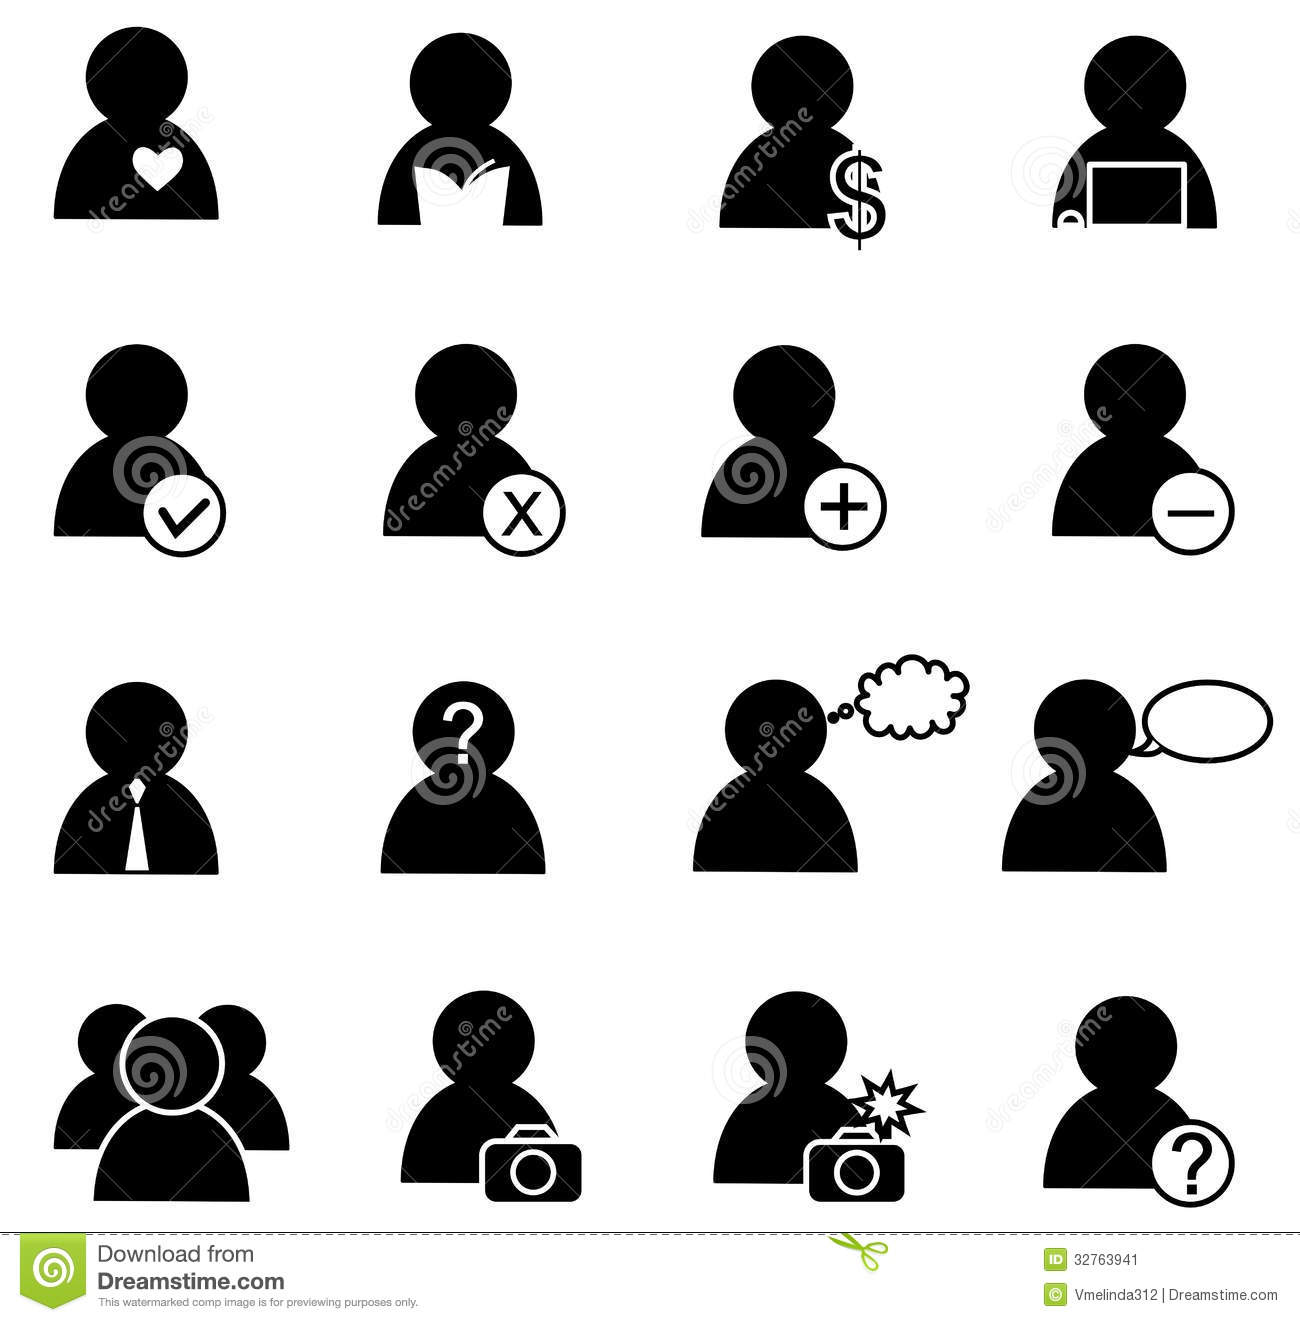 People Network Icon Black And White   www.imgkid.com - The ...